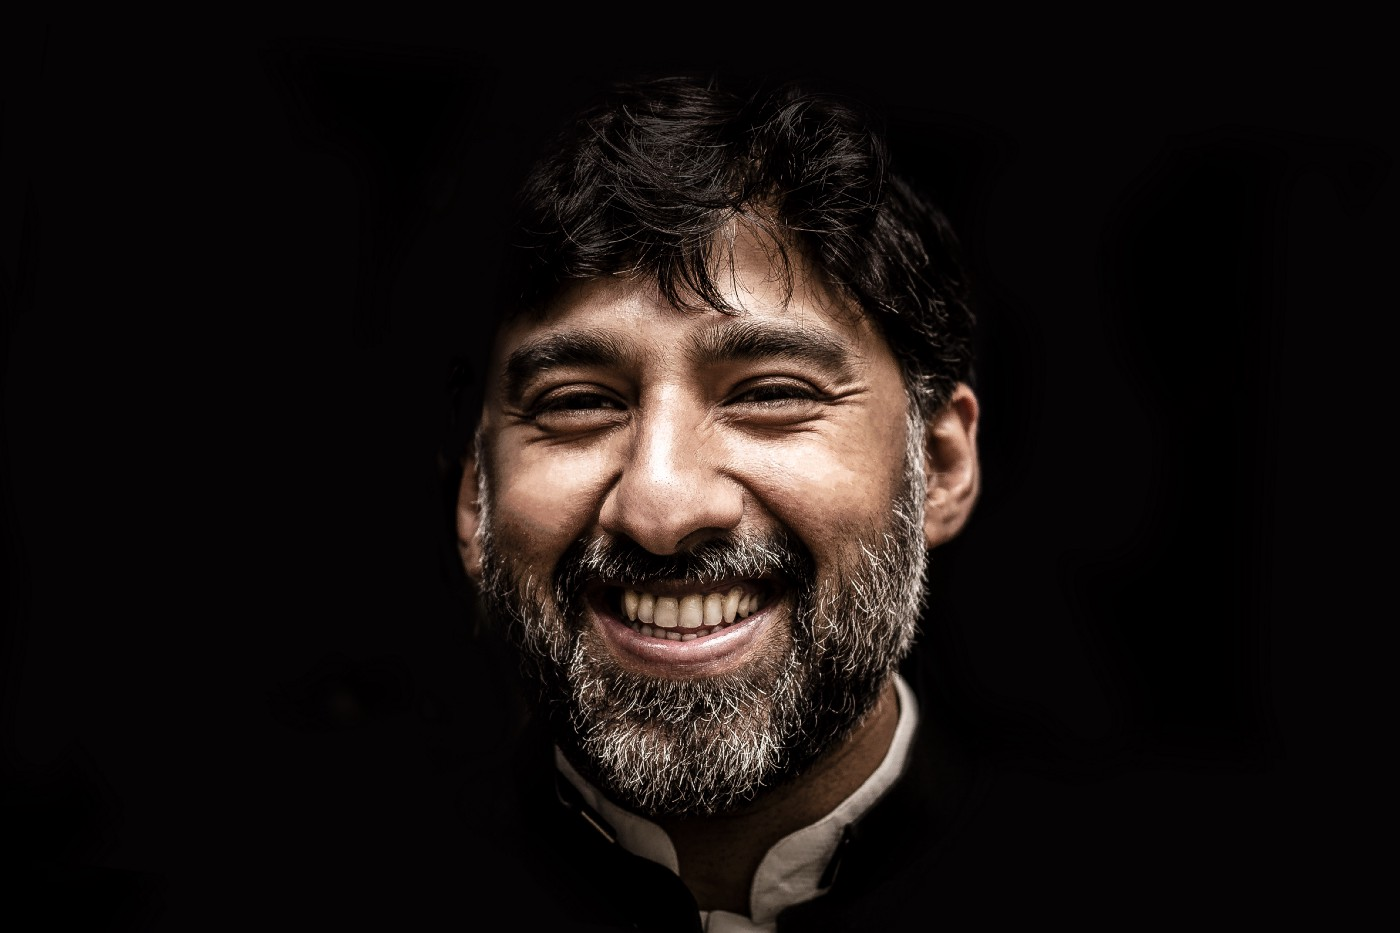 A potrait image of a man smiling in front of a dark background.